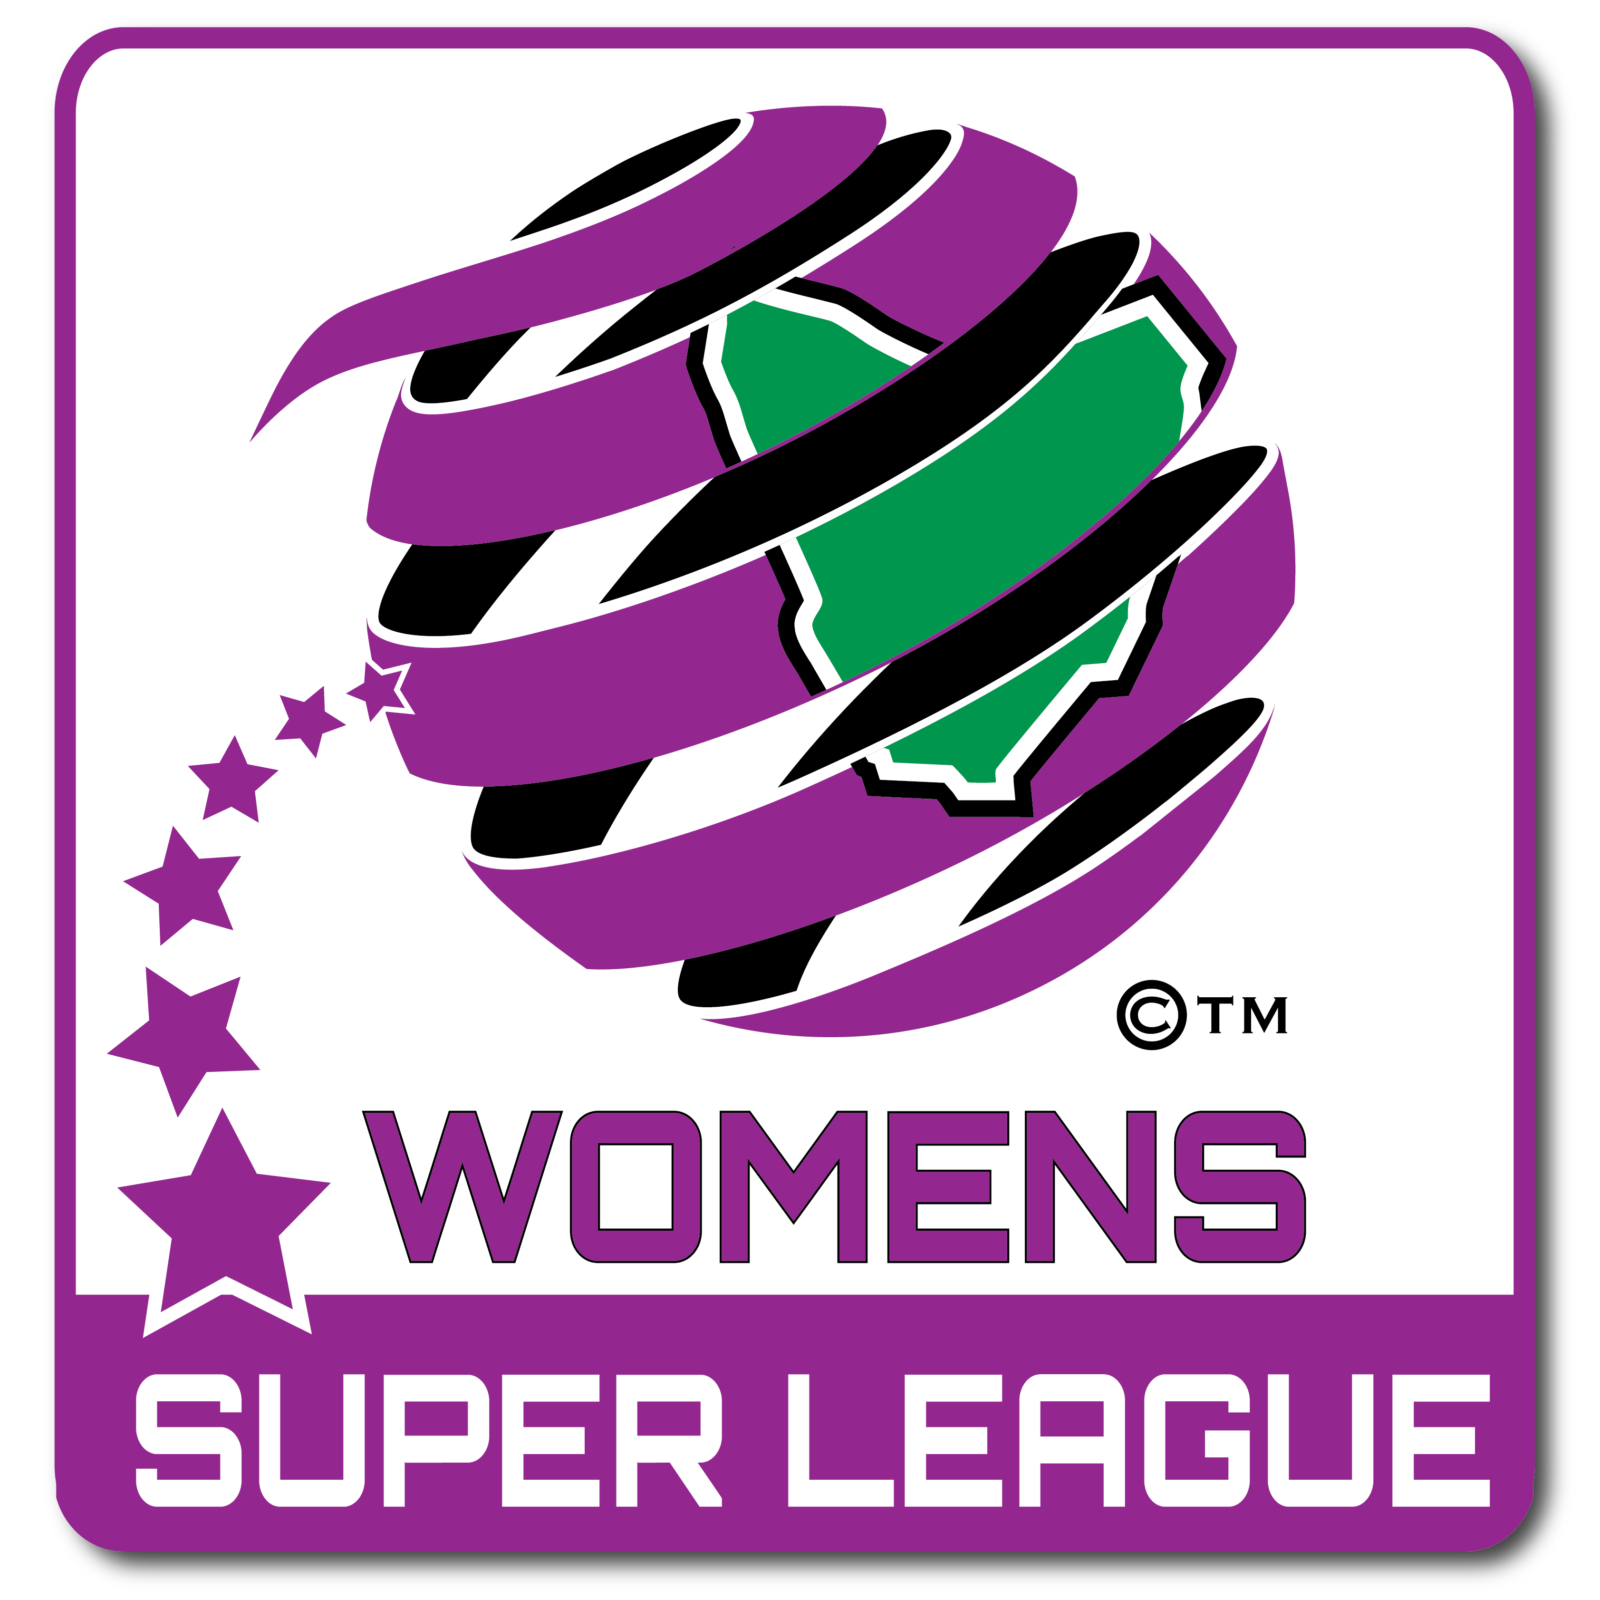 Announcement regarding Women's Super League for 2018